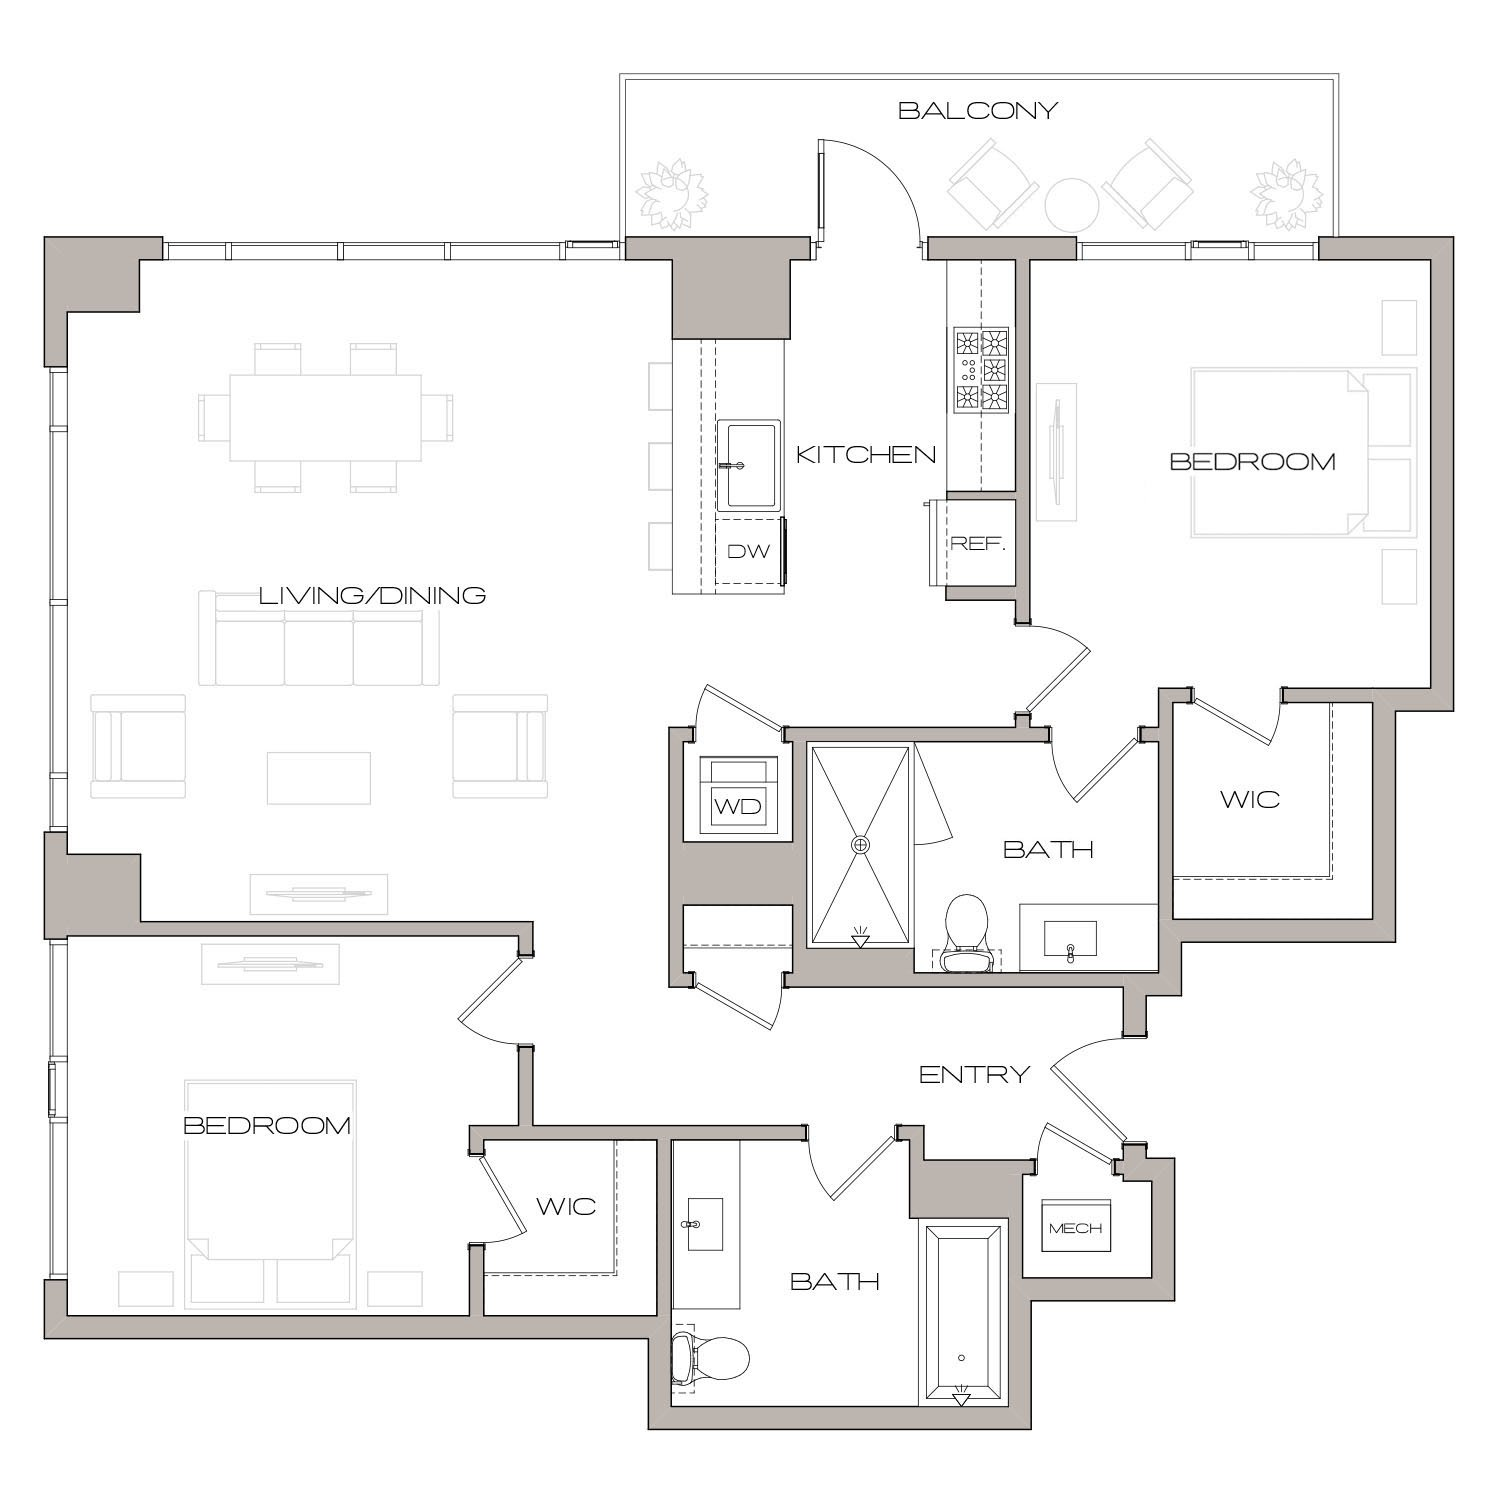 B 4 floor plan diagram. Two bedrooms, two bathrooms, an open kitchen and living area, a terrace, and a washer dryer.